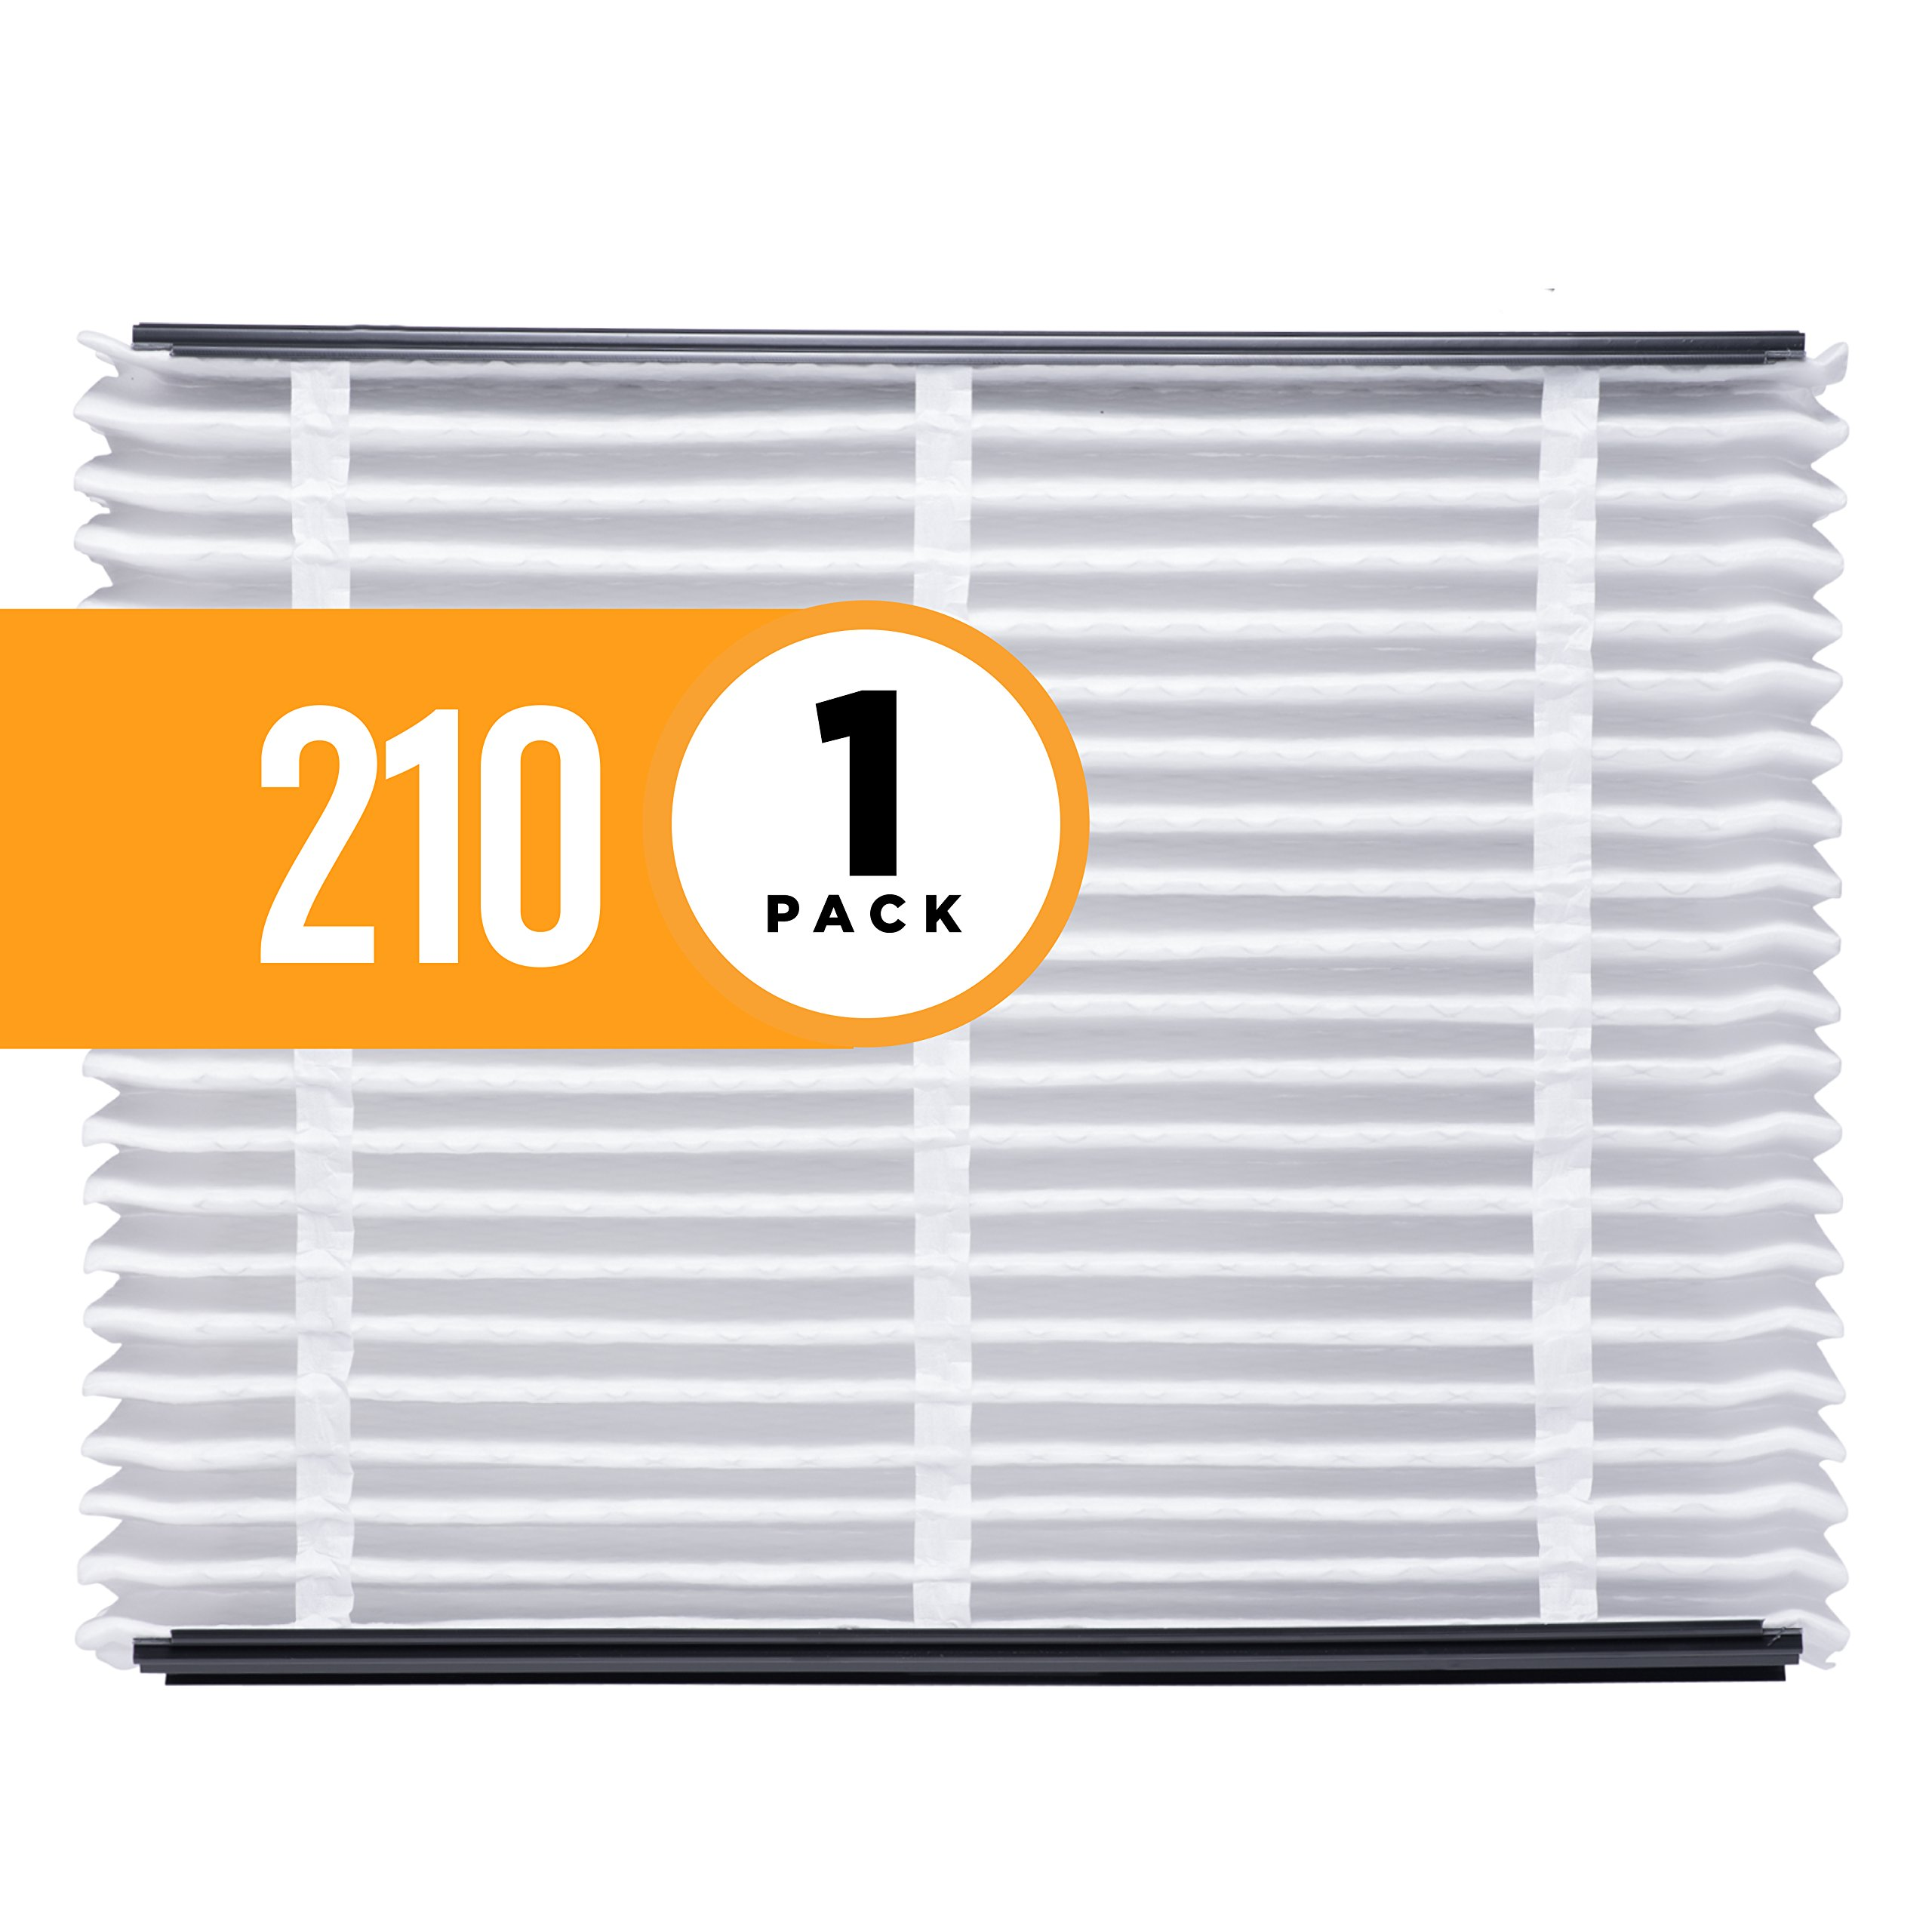 Aprilaire 210 Air Filter for Aprilaire Whole Home Air Purifiers, MERV 11 (Pack of 1)